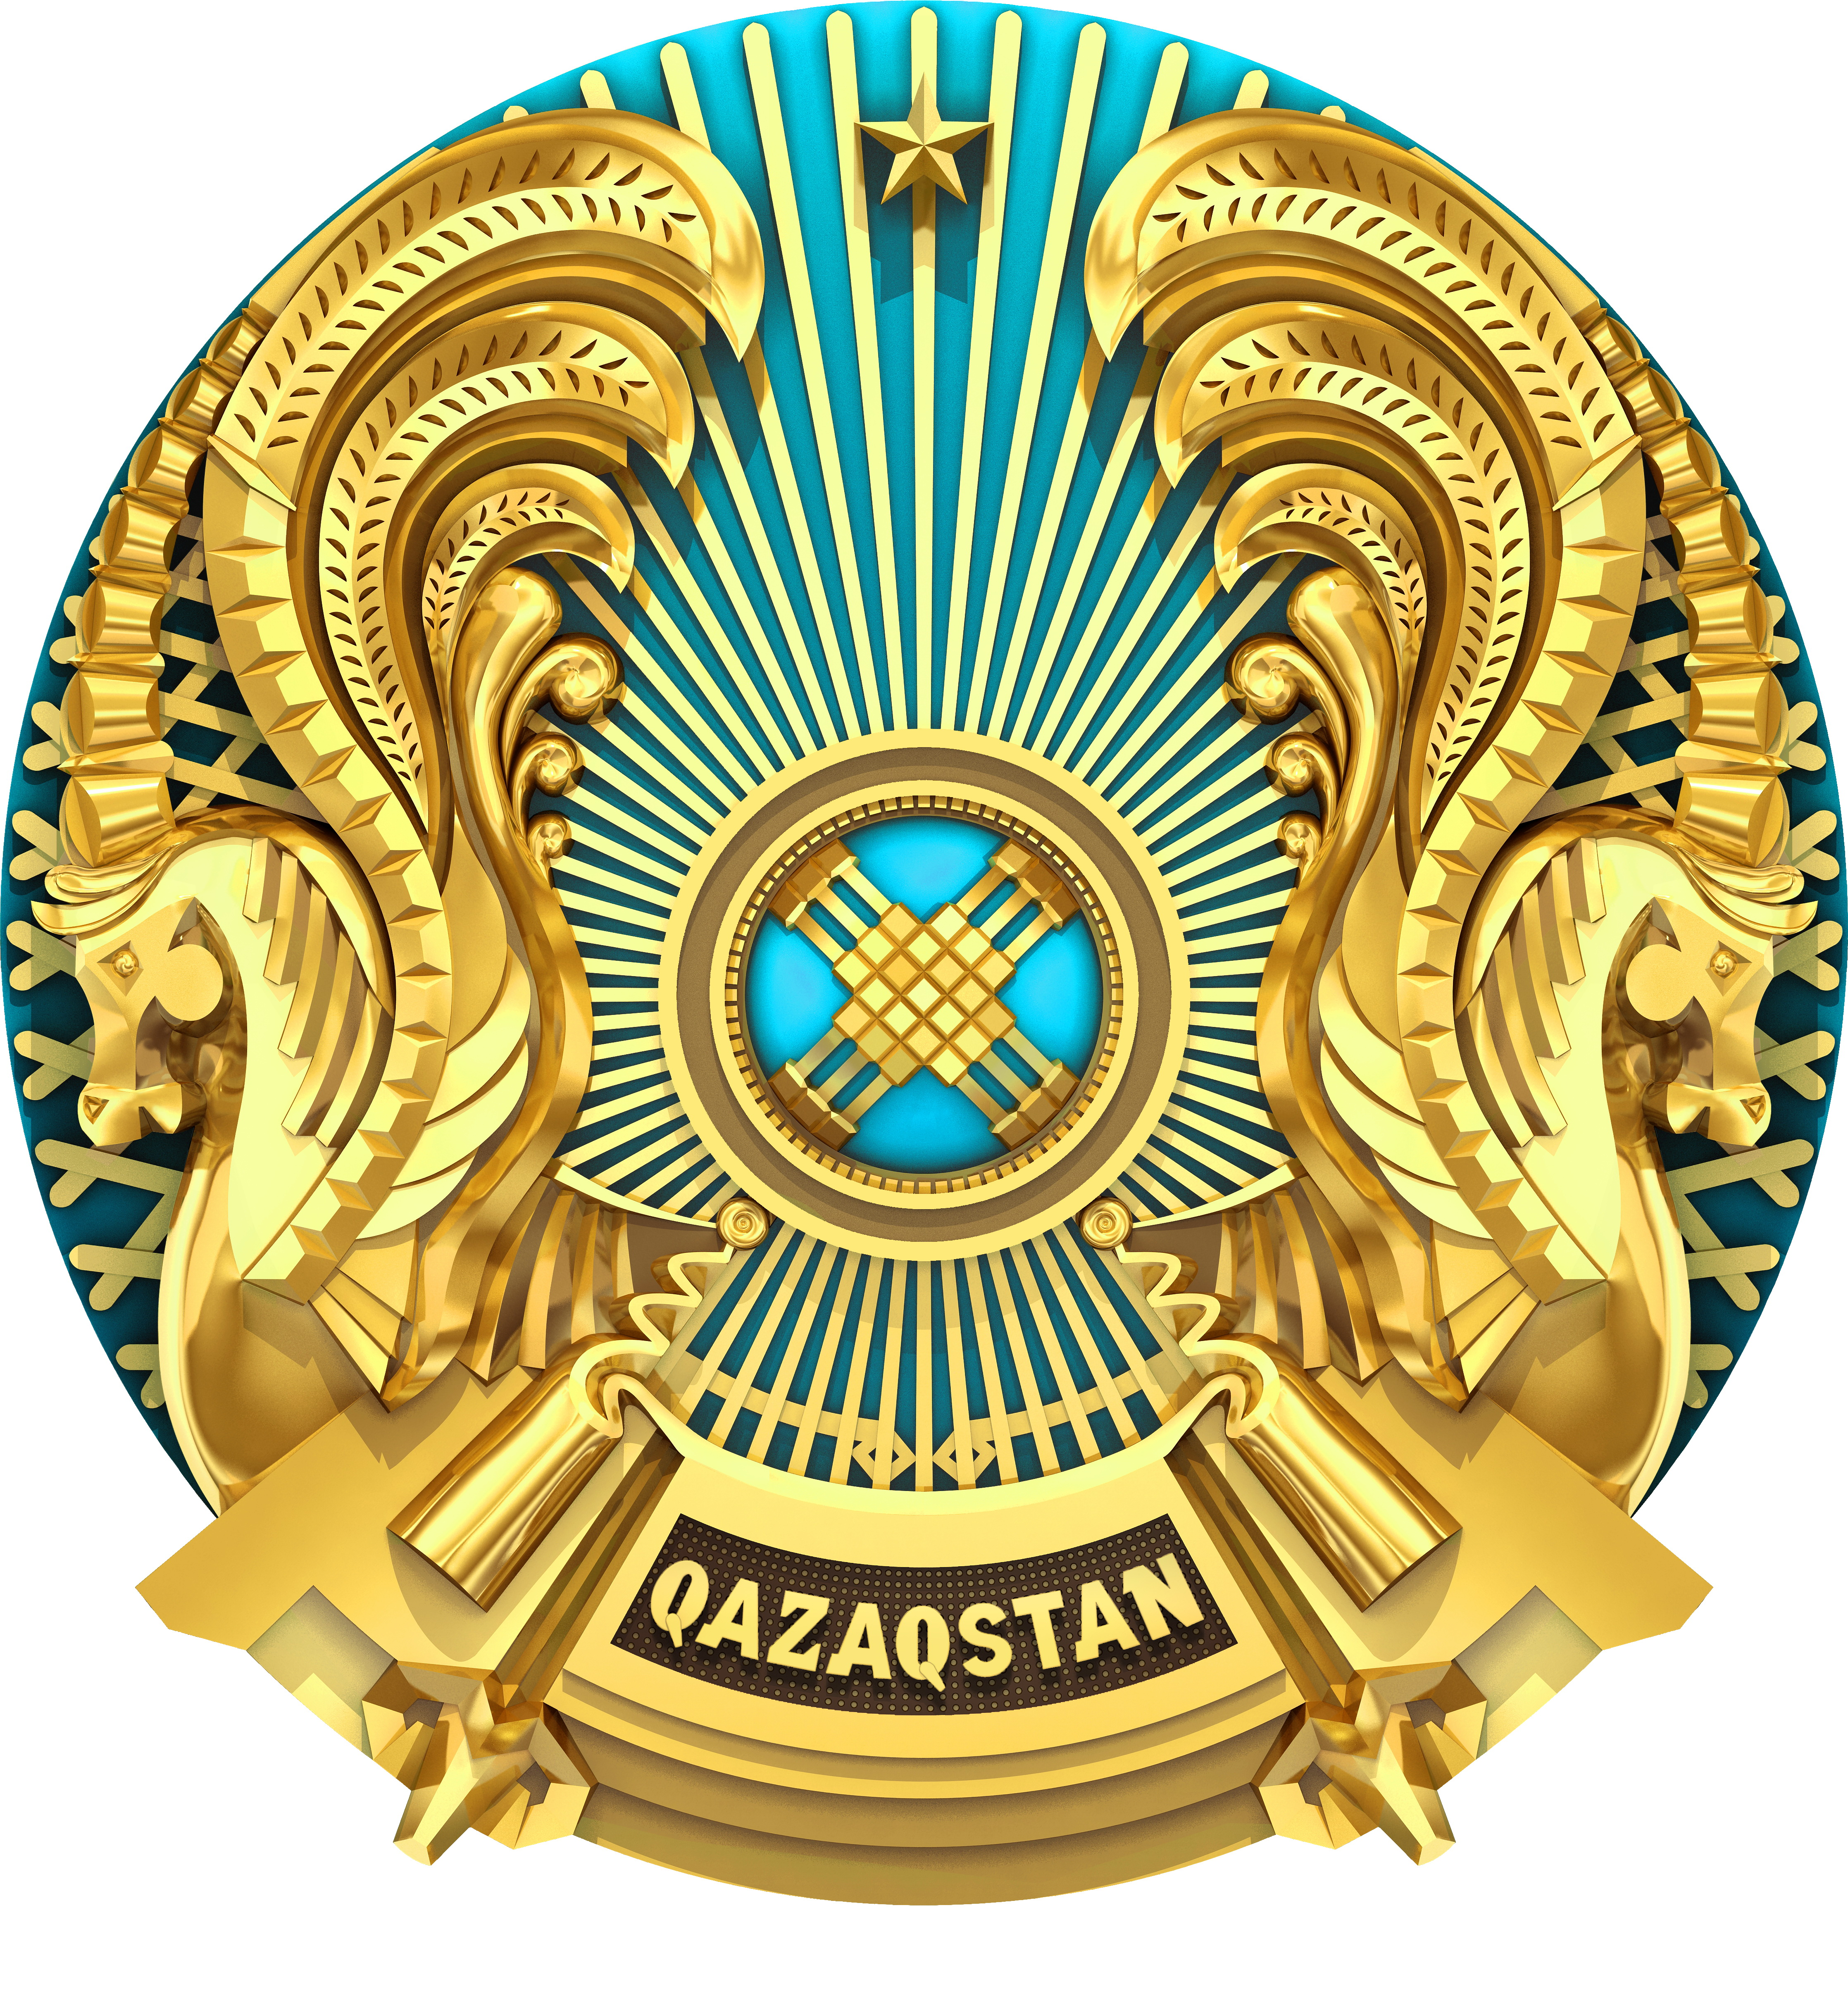 The Permanent Mission of the Republic of Kazakhstan to the United Nations